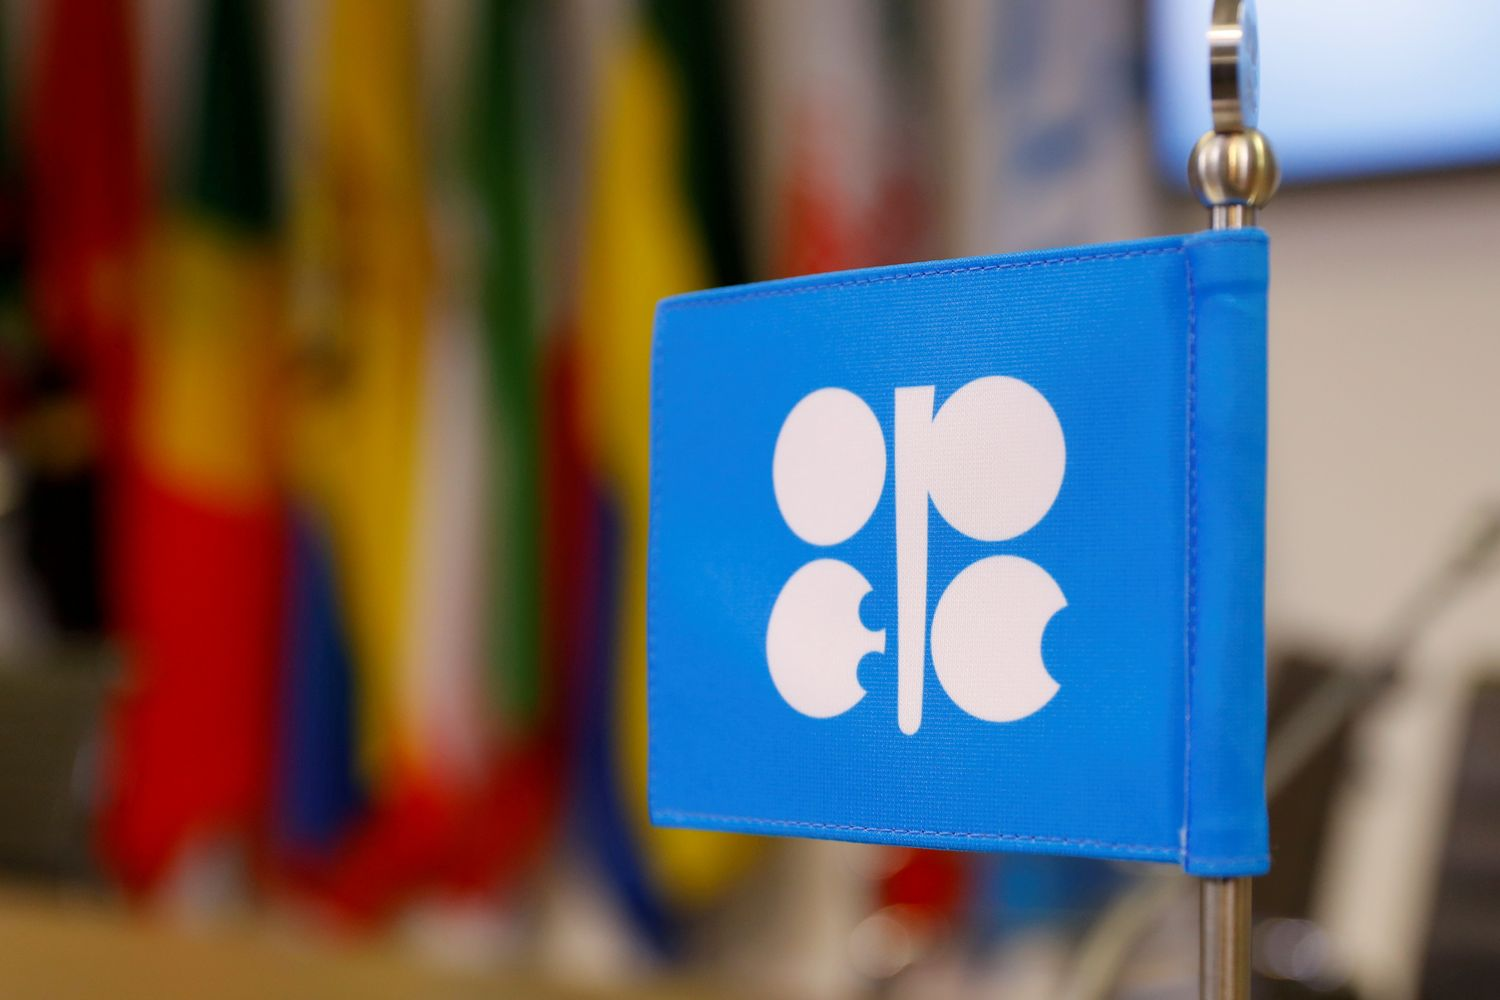 The Opec logo on a flag at the oil producer group's headquarters in Vienna in 2018. (Reuters photo)